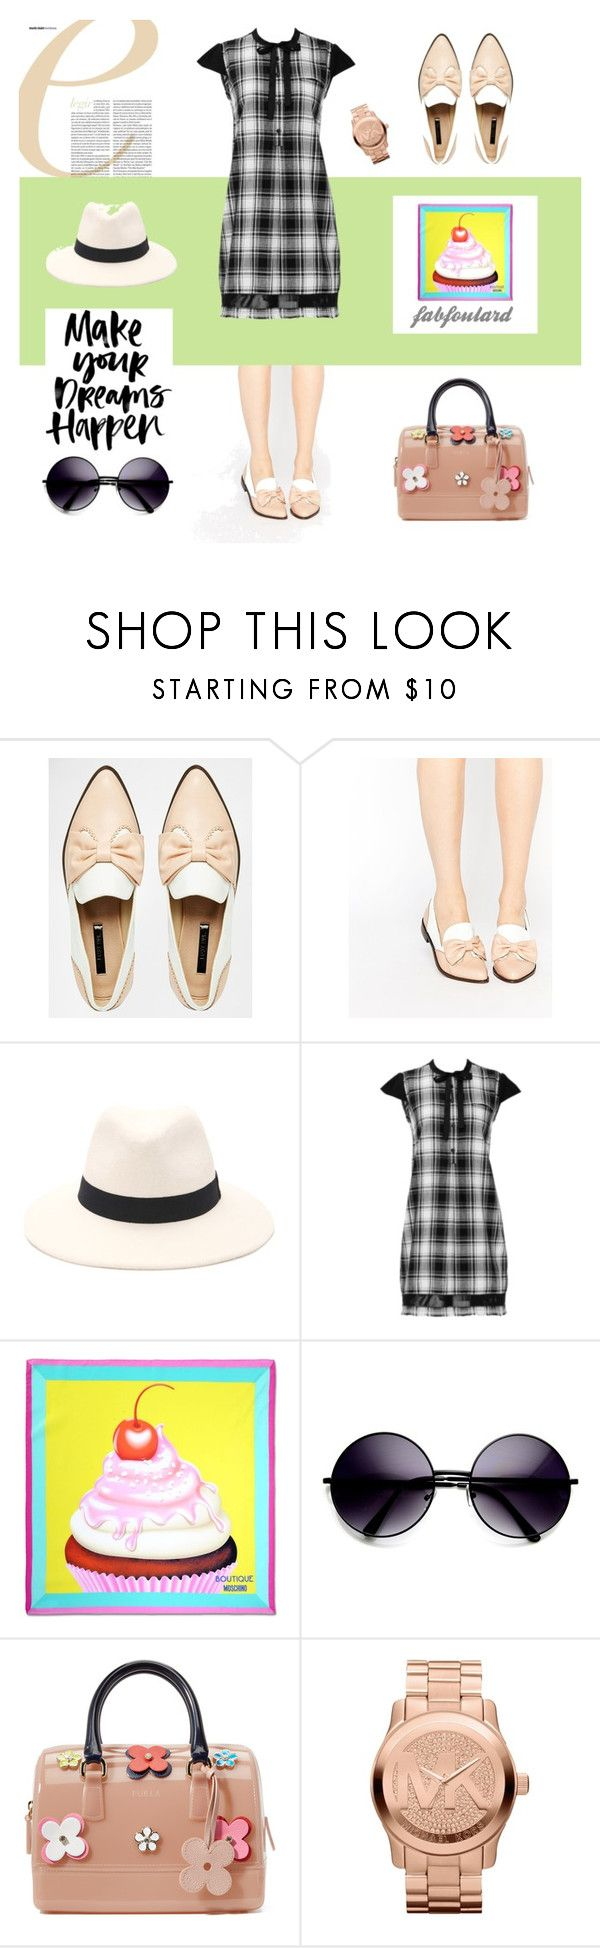 """Walking on the golf grass"" by pinfi on Polyvore featuring Lost Ink, Forever 21, Boutique Moschino, ZeroUV, Furla and Michael Kors #trend #fashion #oxford #pink"